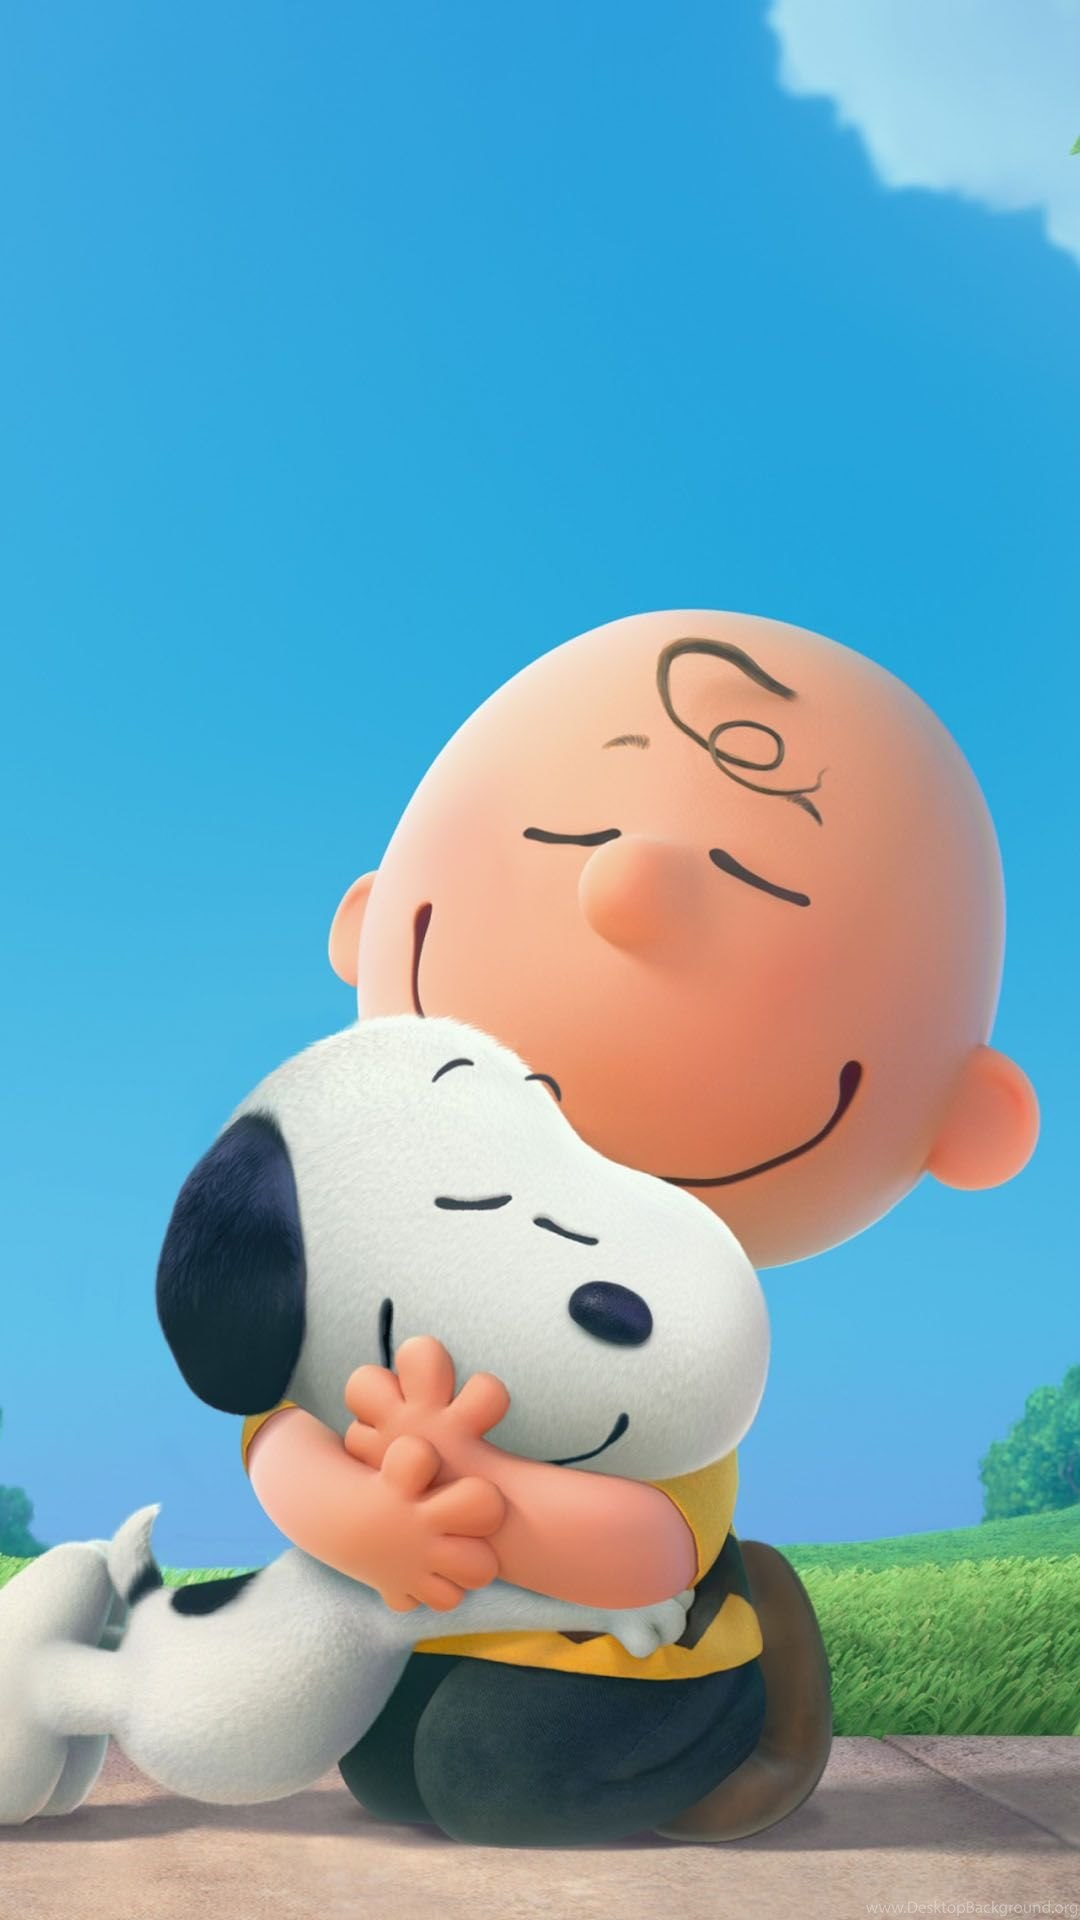 Peanuts Snoopy Iphone 6 6 Plus And Iphone 5 4 Wallpapers Desktop